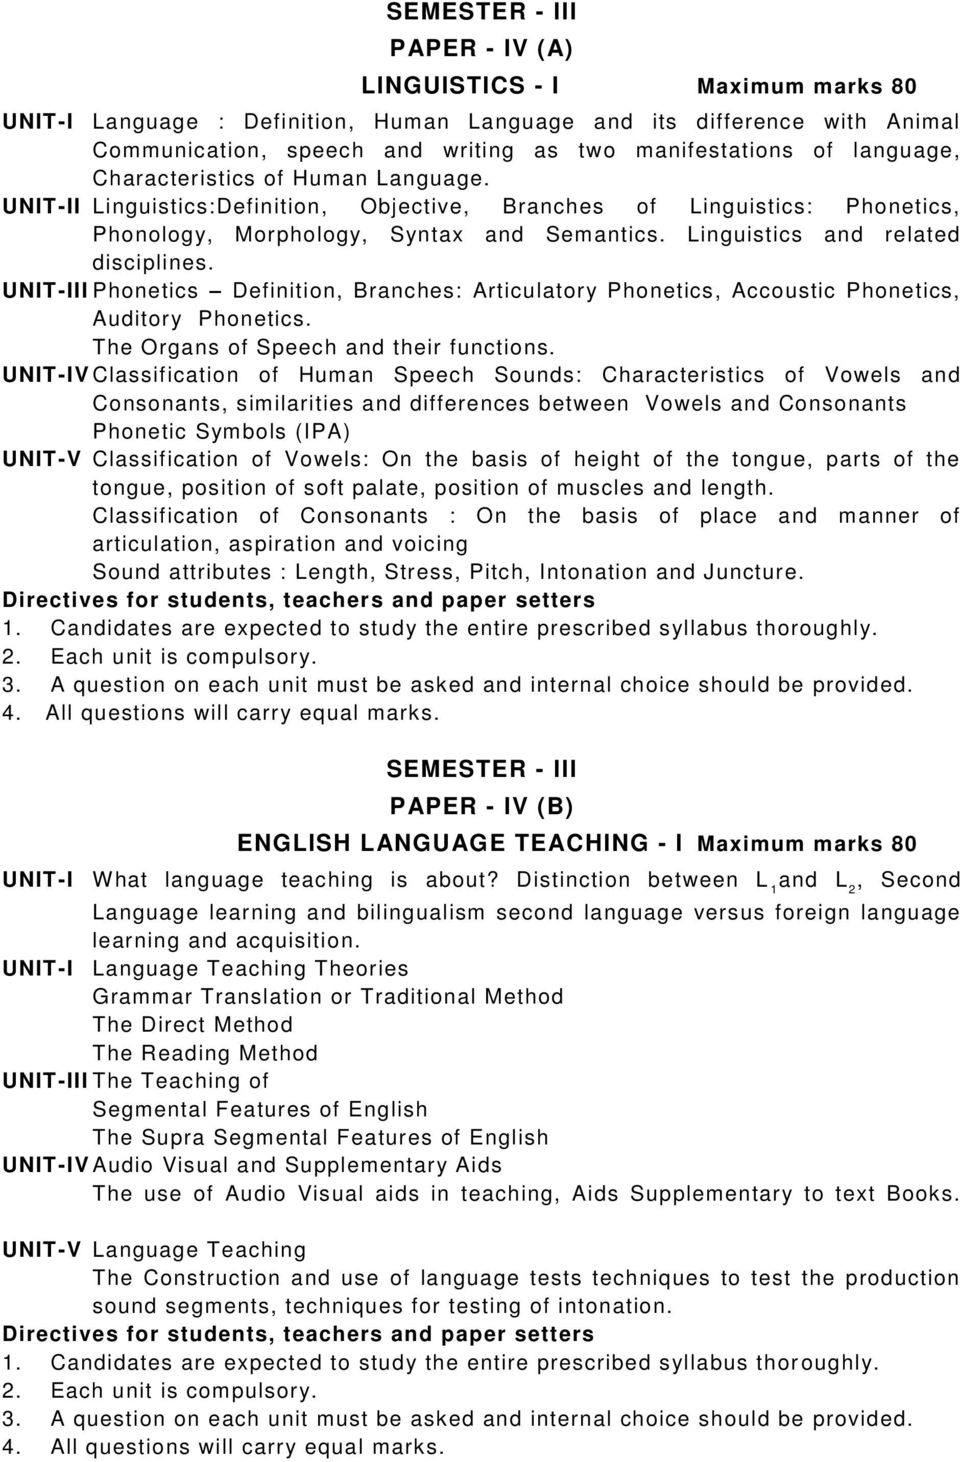 British Bachelor's Degree classification (1st class in all 8 second n third year subjects)?